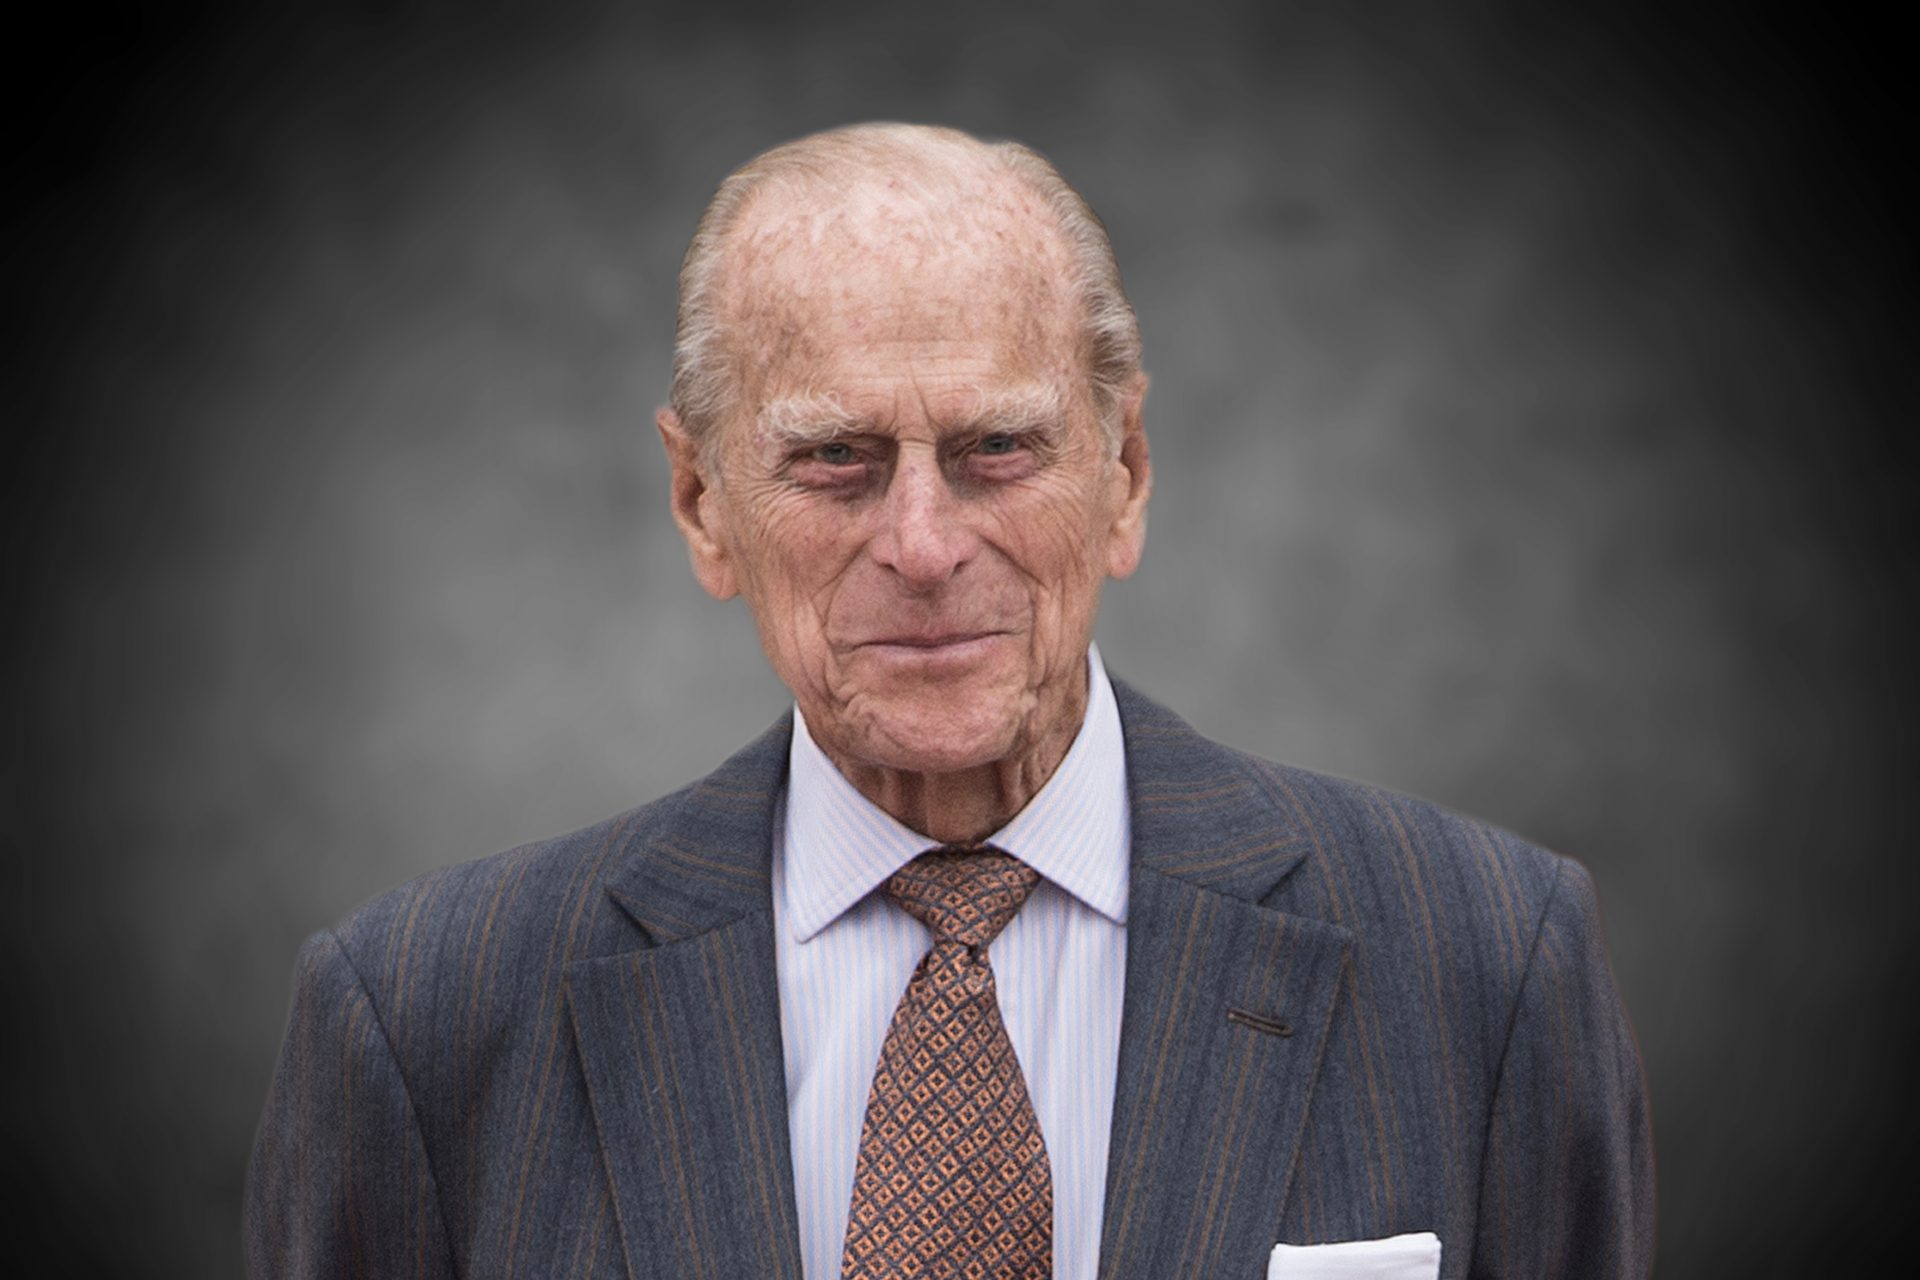 Remember Prince Philip's long life through these historic photos